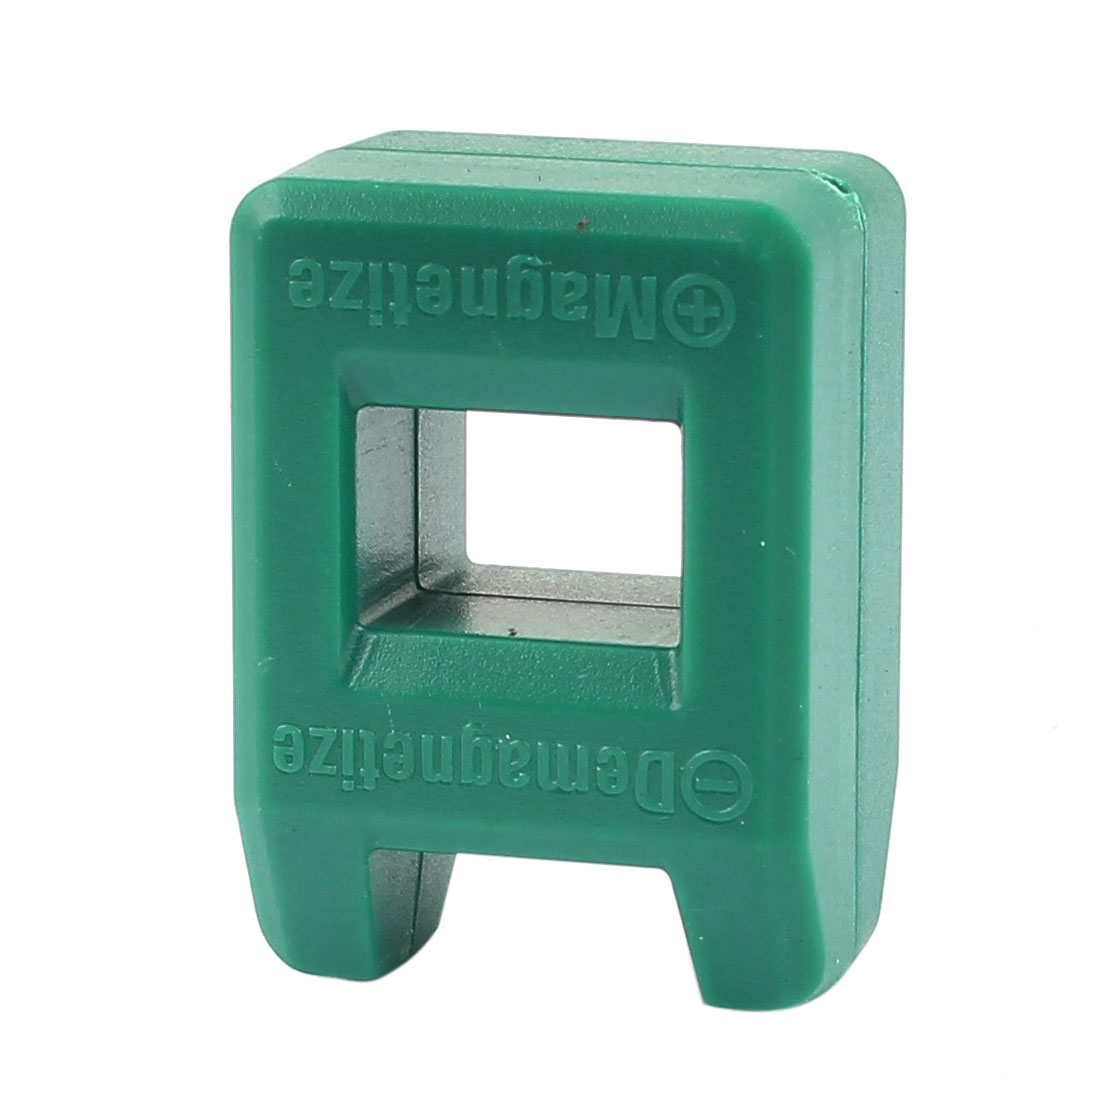 Screw Bit Nut Bits Screwdriver Magnetizer Demagnetizer Magnetic Tool Green 40mmx29mm